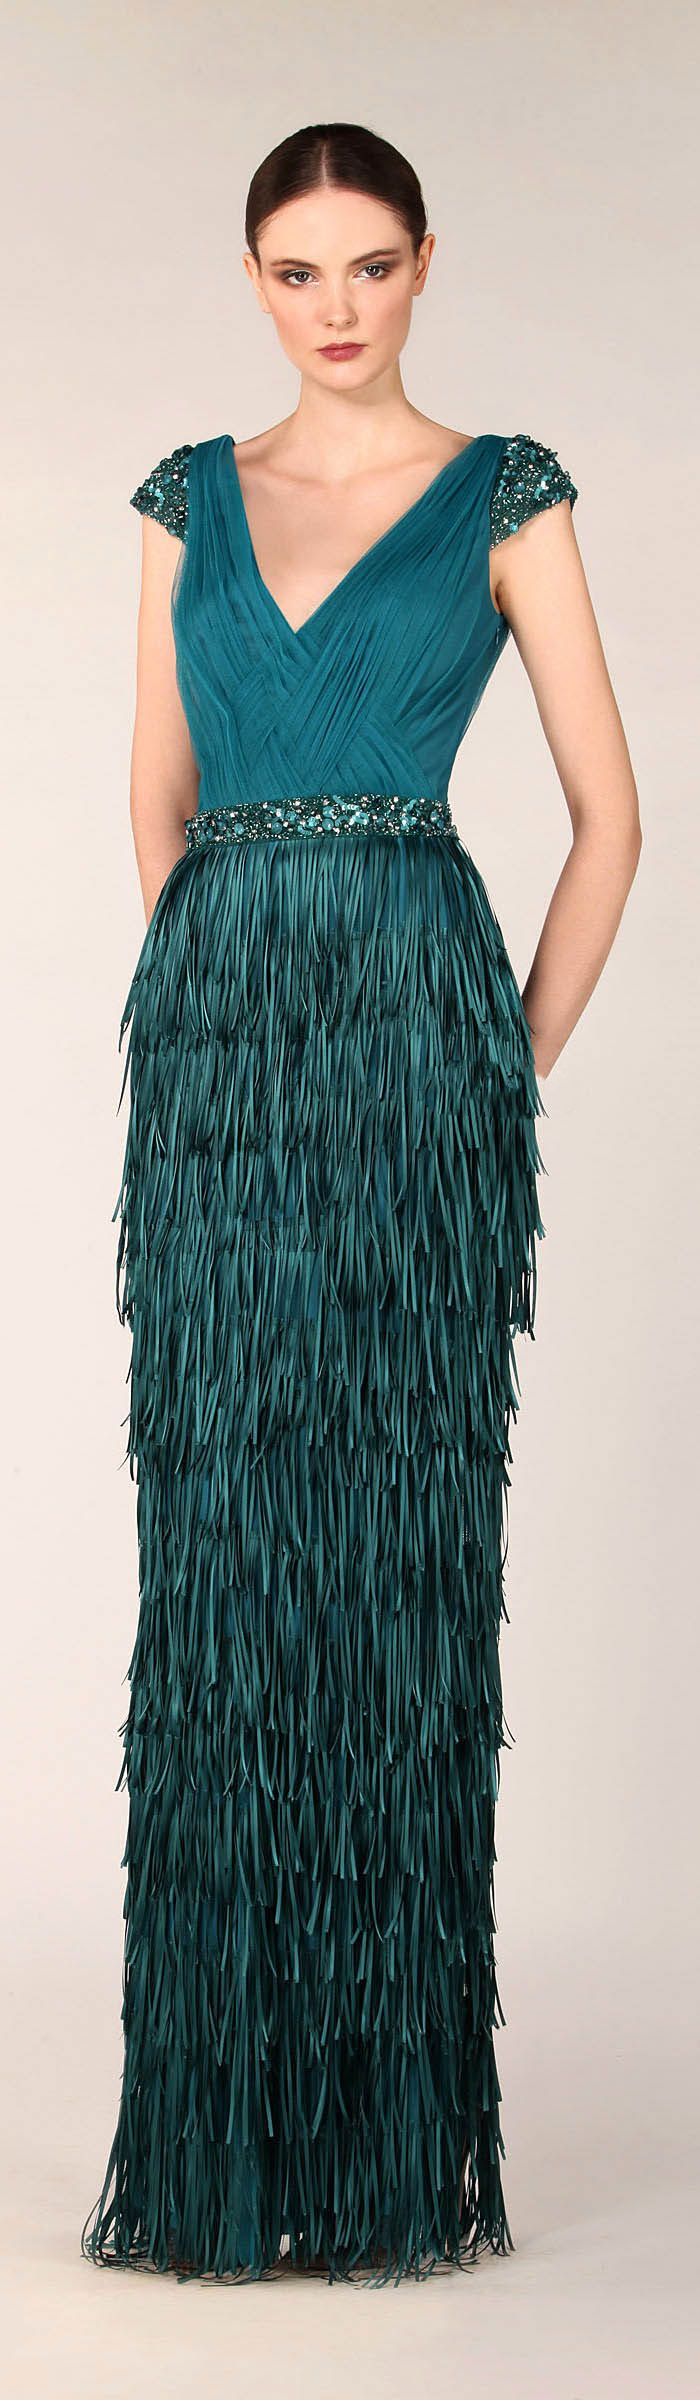 Tony Ward Fall Winter 2013-2014 - Something like this for the Navy Ball this year?